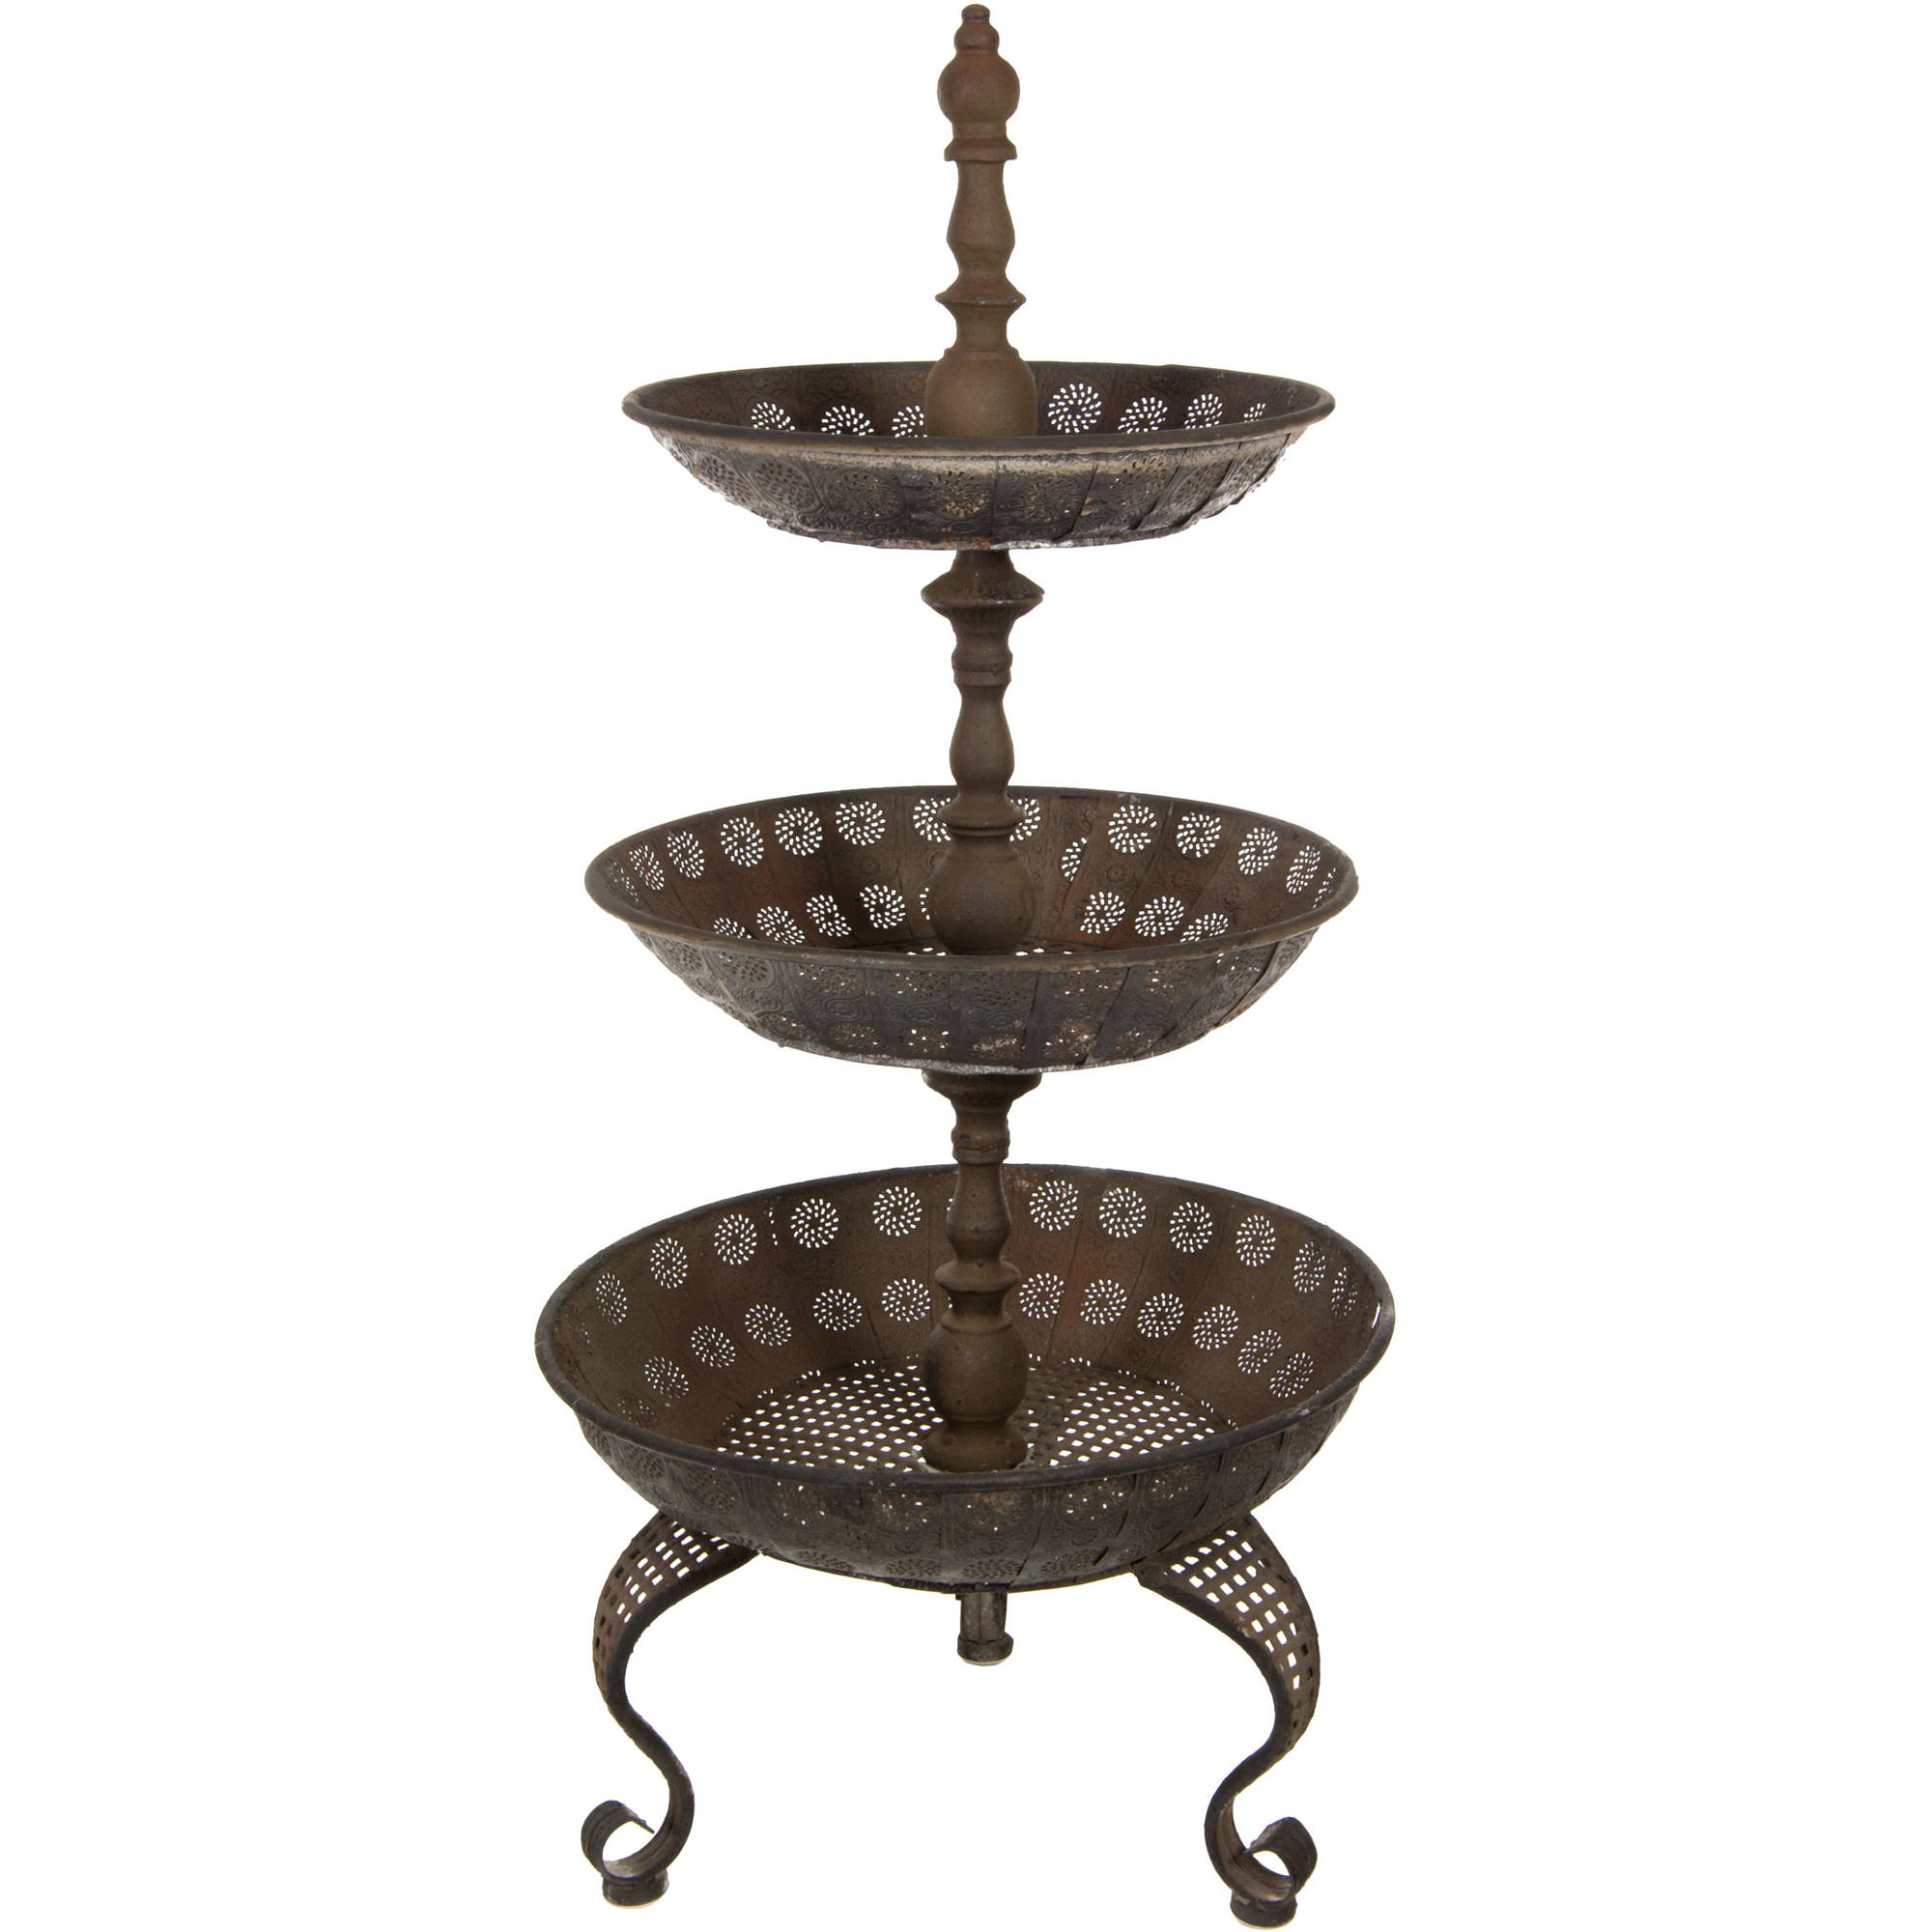 3 Tier Iron Tray Display Stand